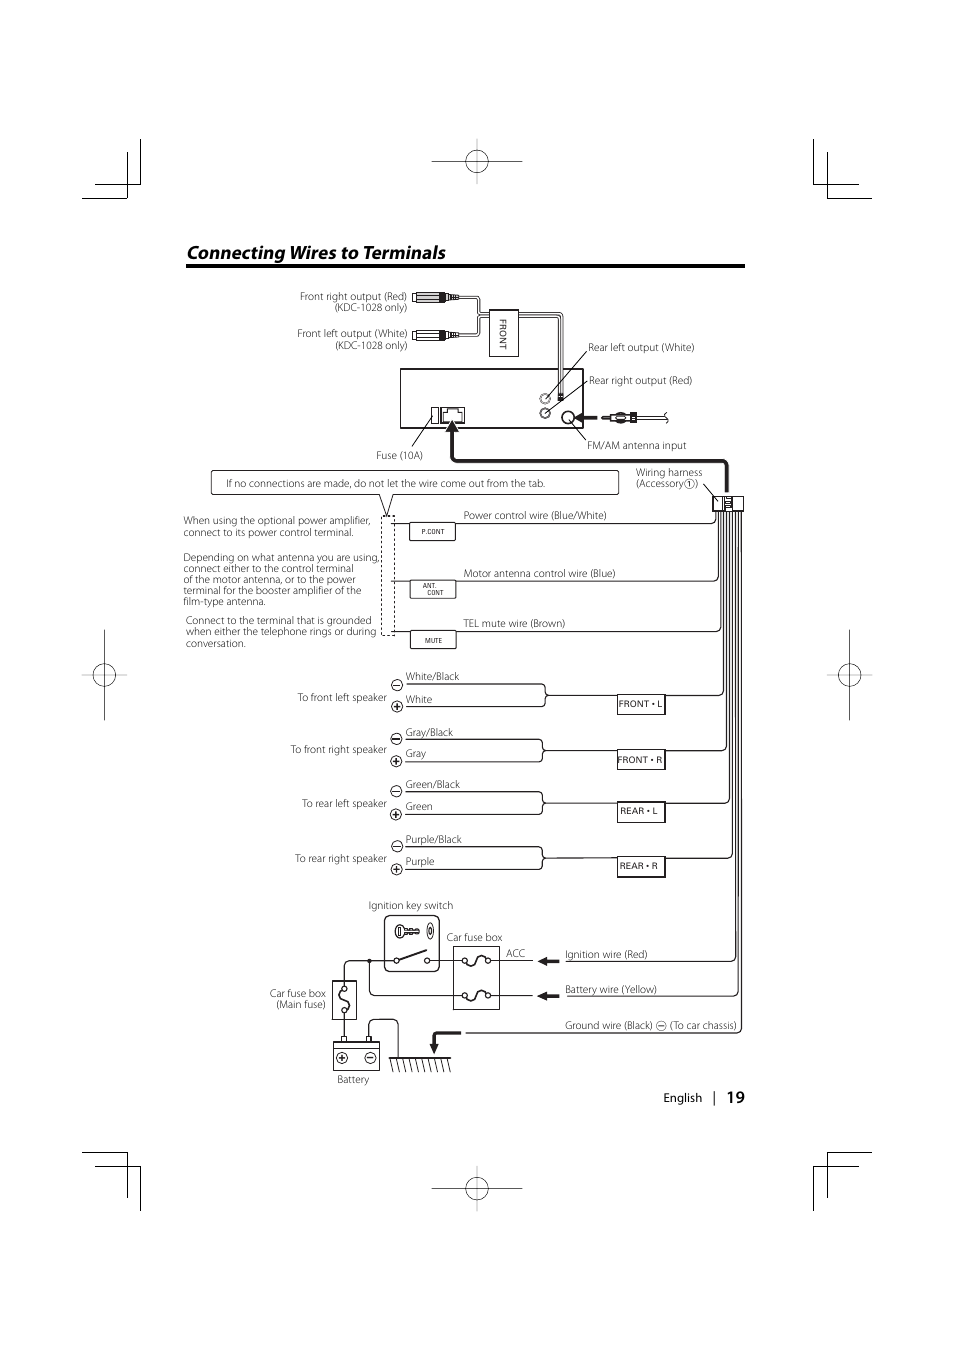 kenwood kdc u wiring diagram kenwood image kenwood kdc 128 wiring harness dodge magnum wiring schematics b on kenwood kdc 255u wiring diagram